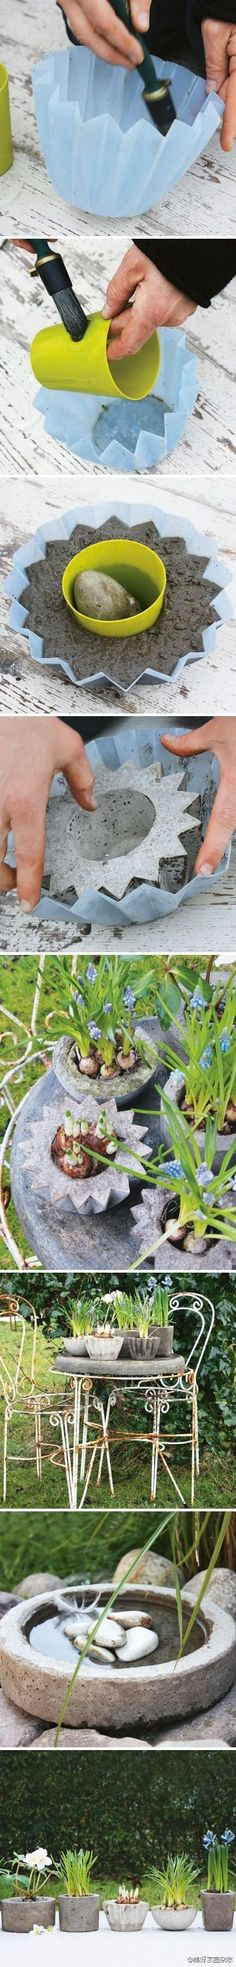 Inspiring images of how to create planters of all shapes & sizes. | greengardenblog.comgreengardenblog.com